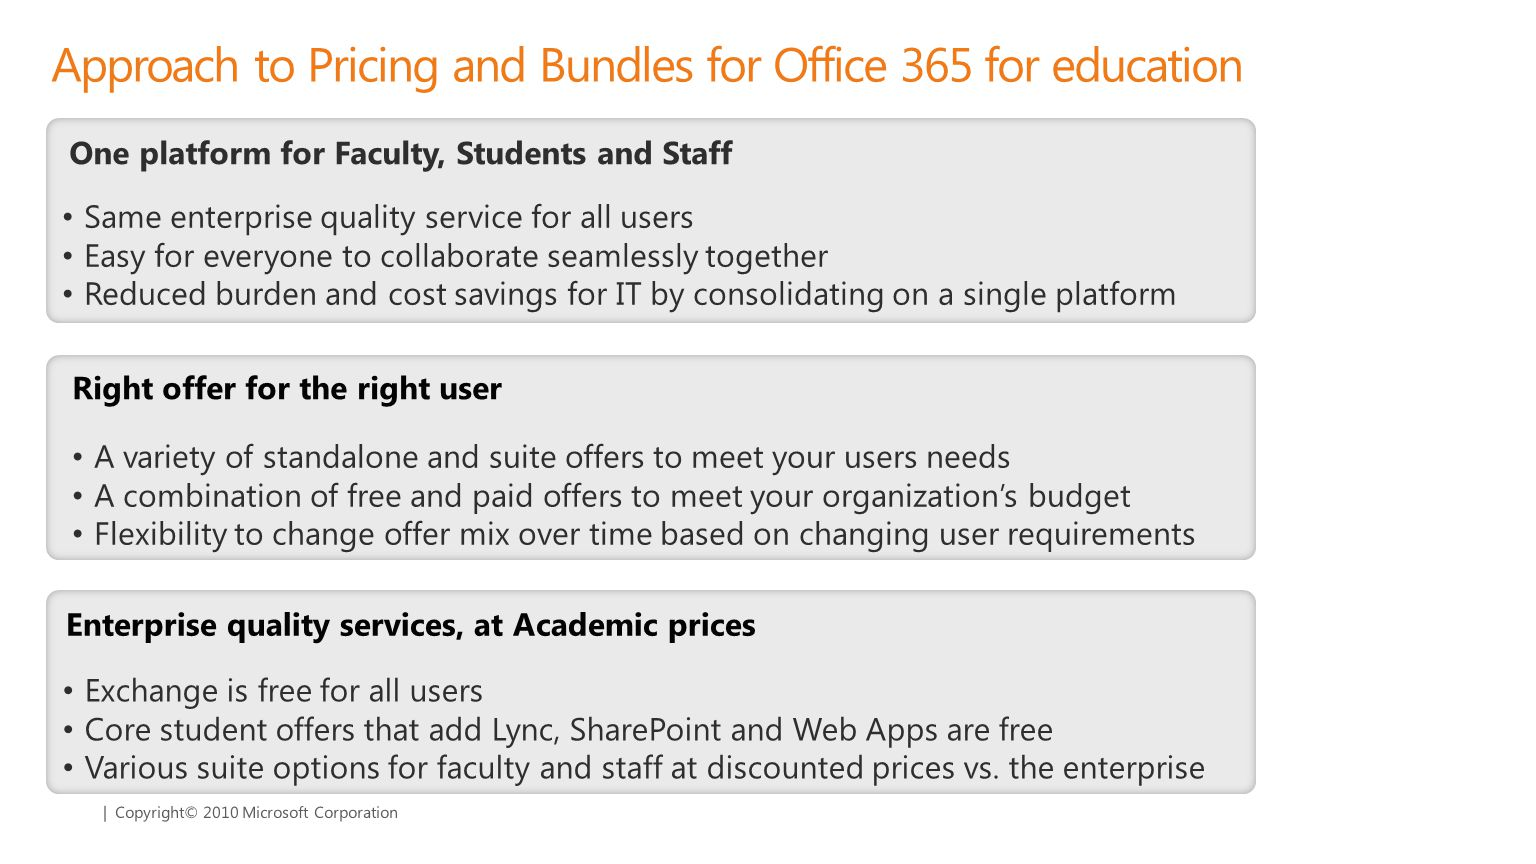 | Copyright© 2010 Microsoft Corporation Enterprise quality services, at Academic prices Right offer for the right user One platform for Faculty, Students and Staff Approach to Pricing and Bundles for Office 365 for education Exchange is free for all users Core student offers that add Lync, SharePoint and Web Apps are free Various suite options for faculty and staff at discounted prices vs.